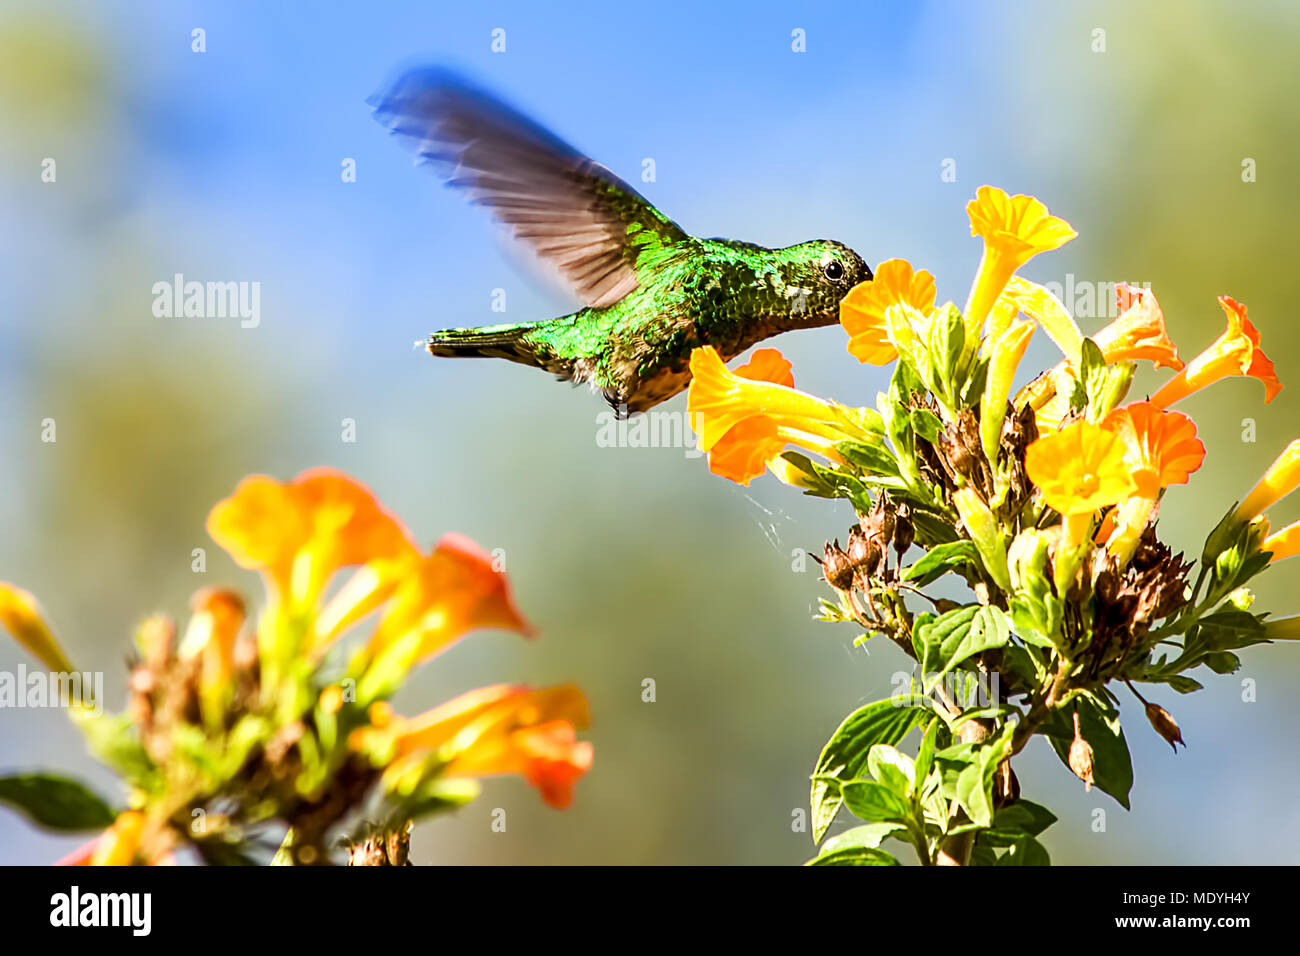 A beautiful hummingbird feeds from a flower. - Stock Image